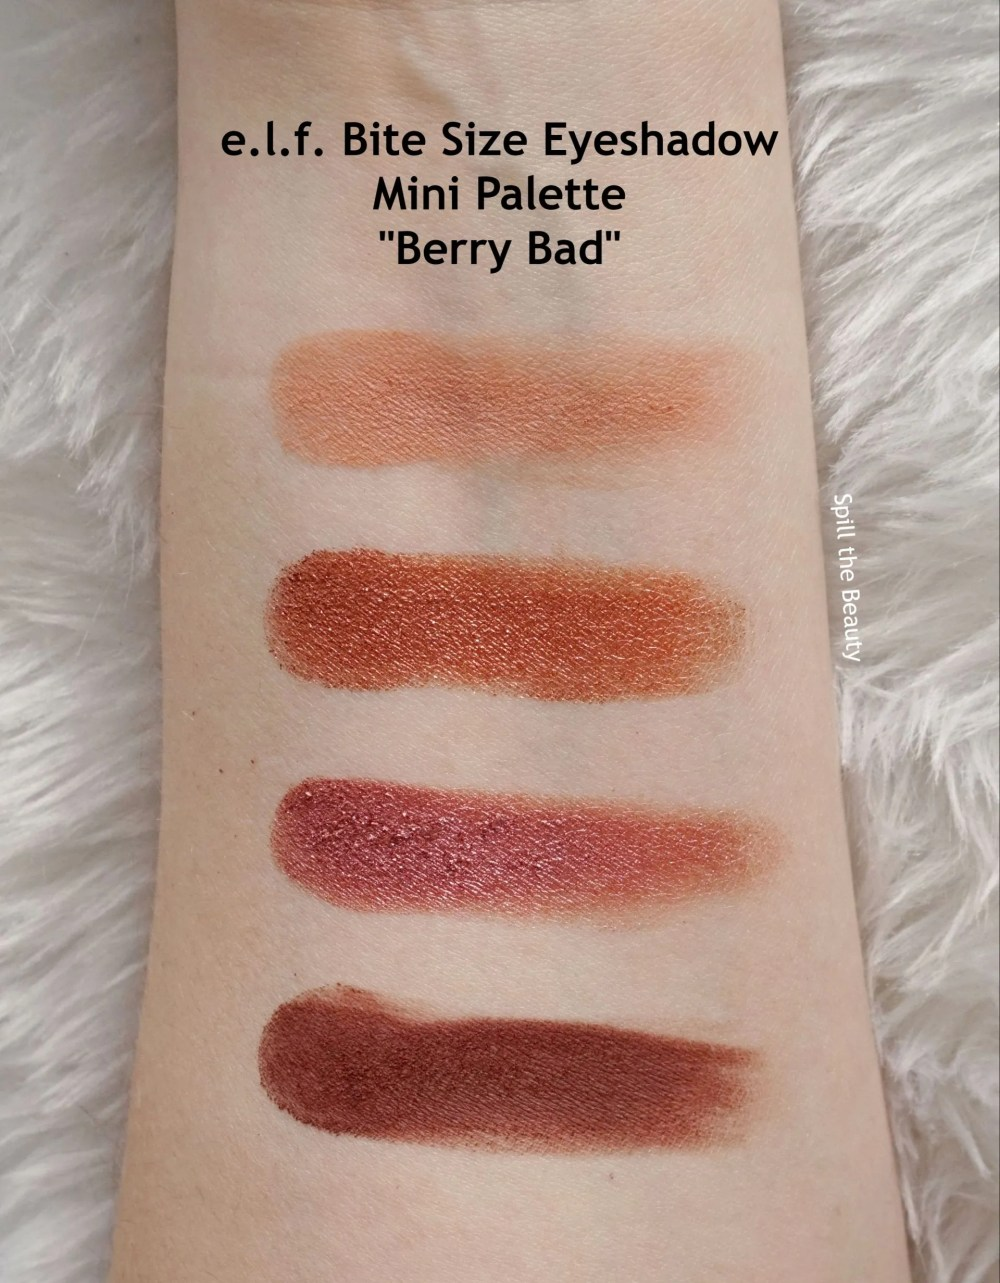 elf berry bad eyeshadow swatches